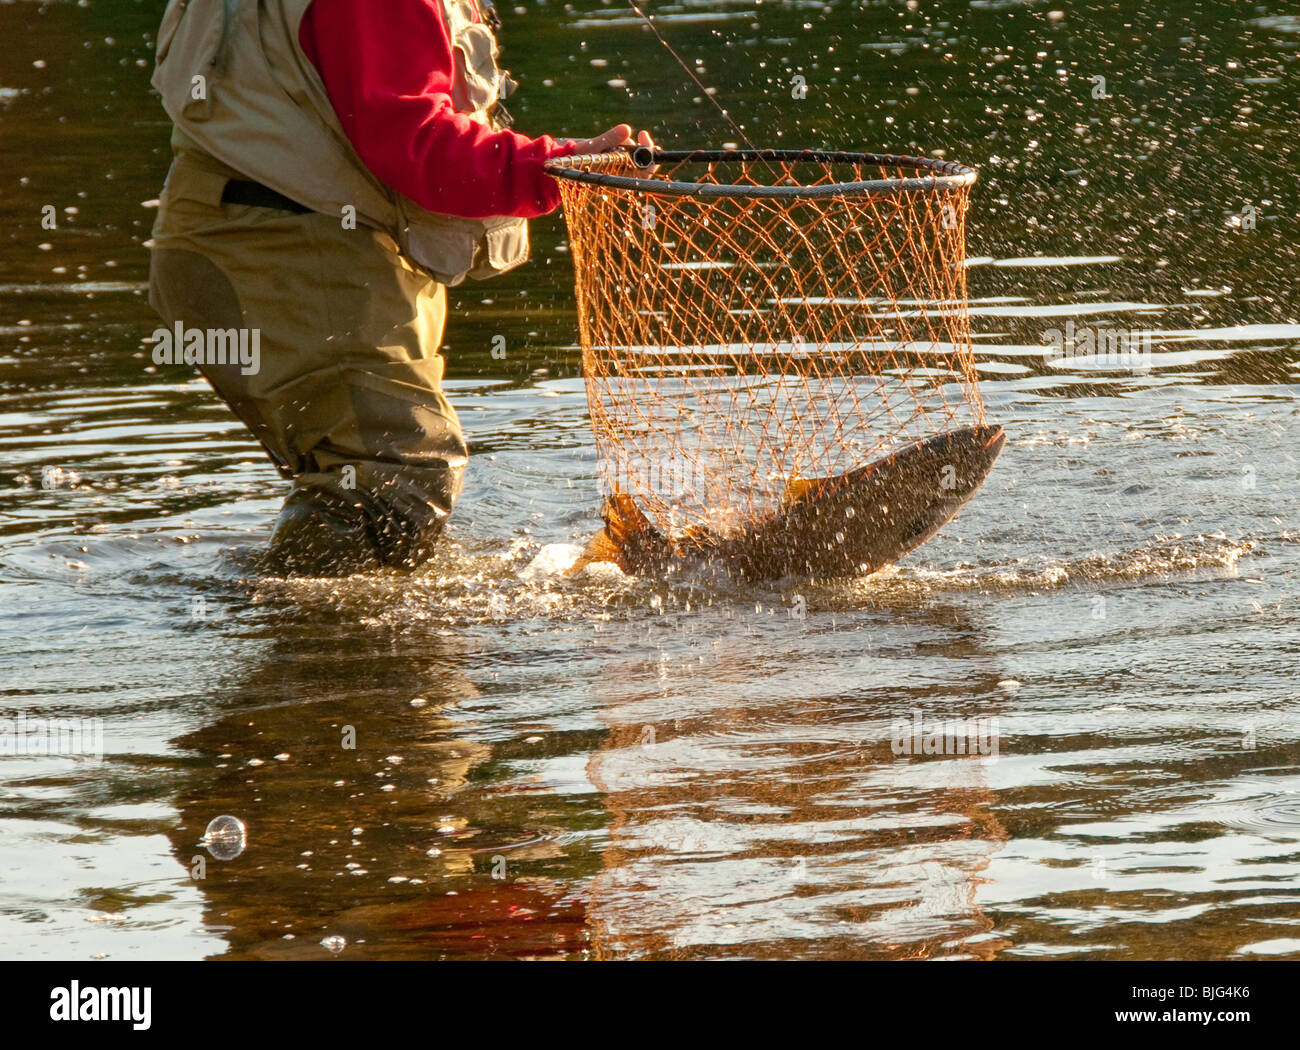 NEW BRUNSWICK, Fly fishing guide netting Atlantic Salmon on the Miramichi River. - Stock Image